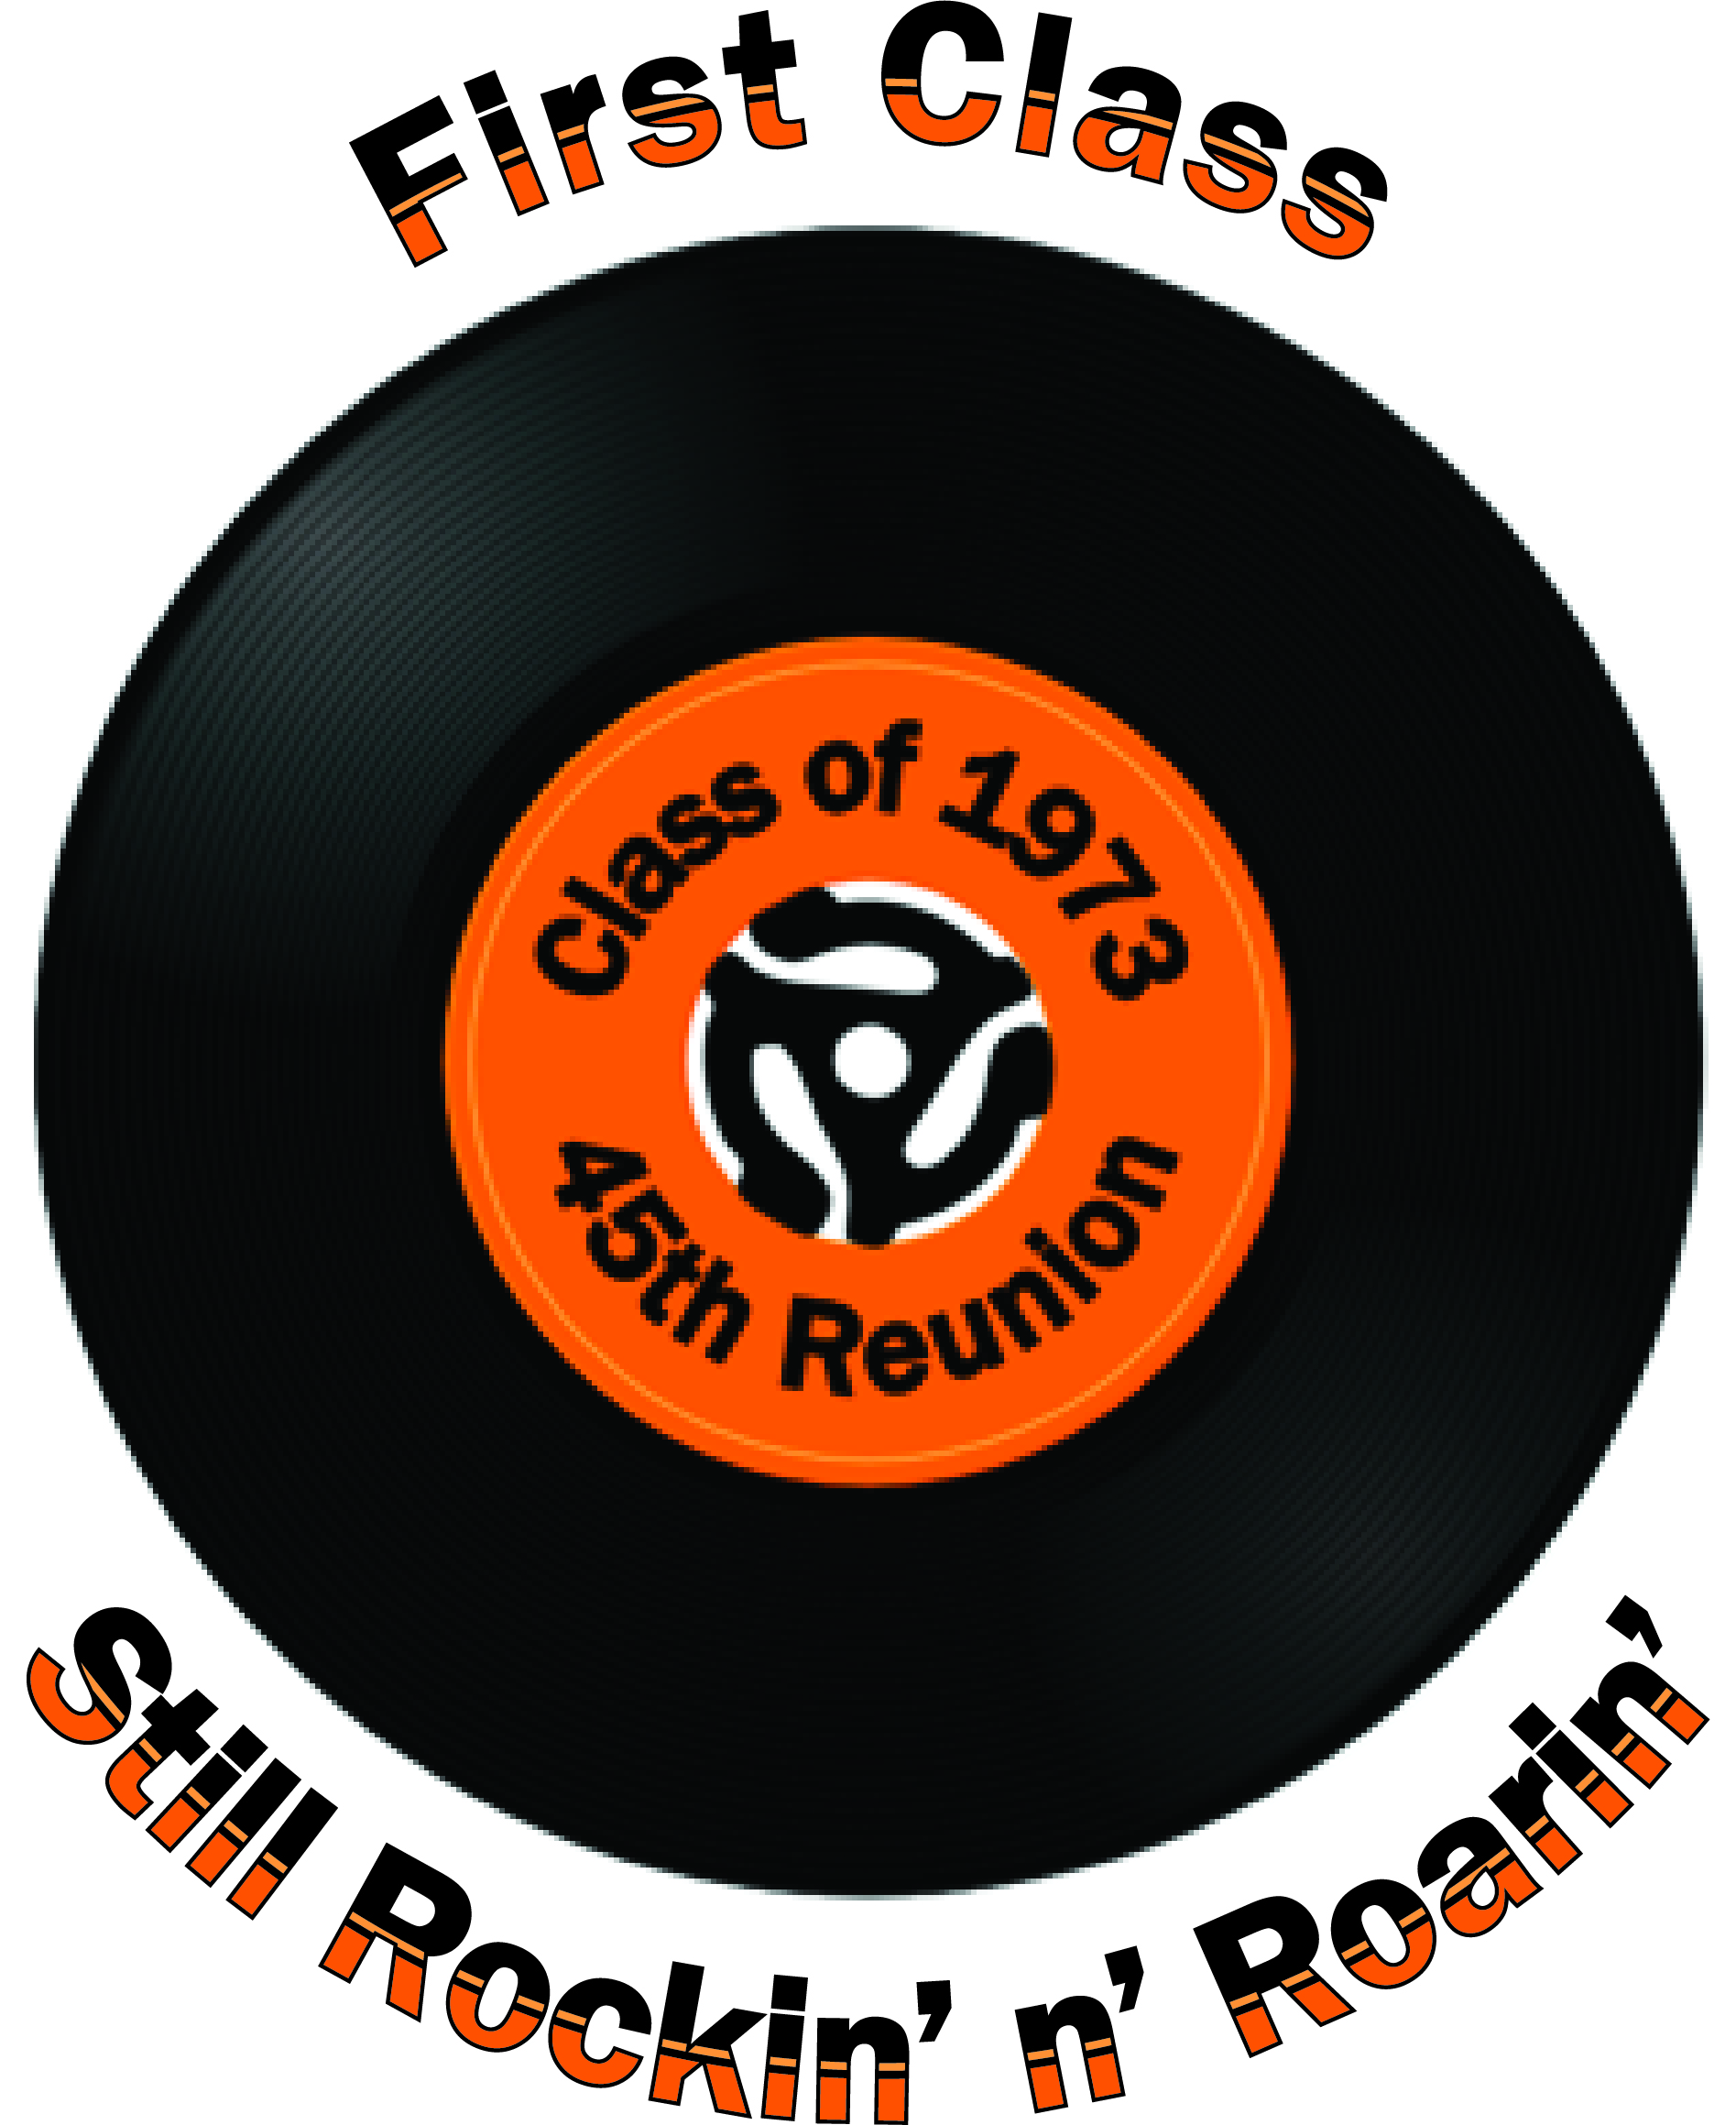 Logo for 45th Reunion showing a 45 rpm record with Still Rockin' and Roarin' and First Class at the top.